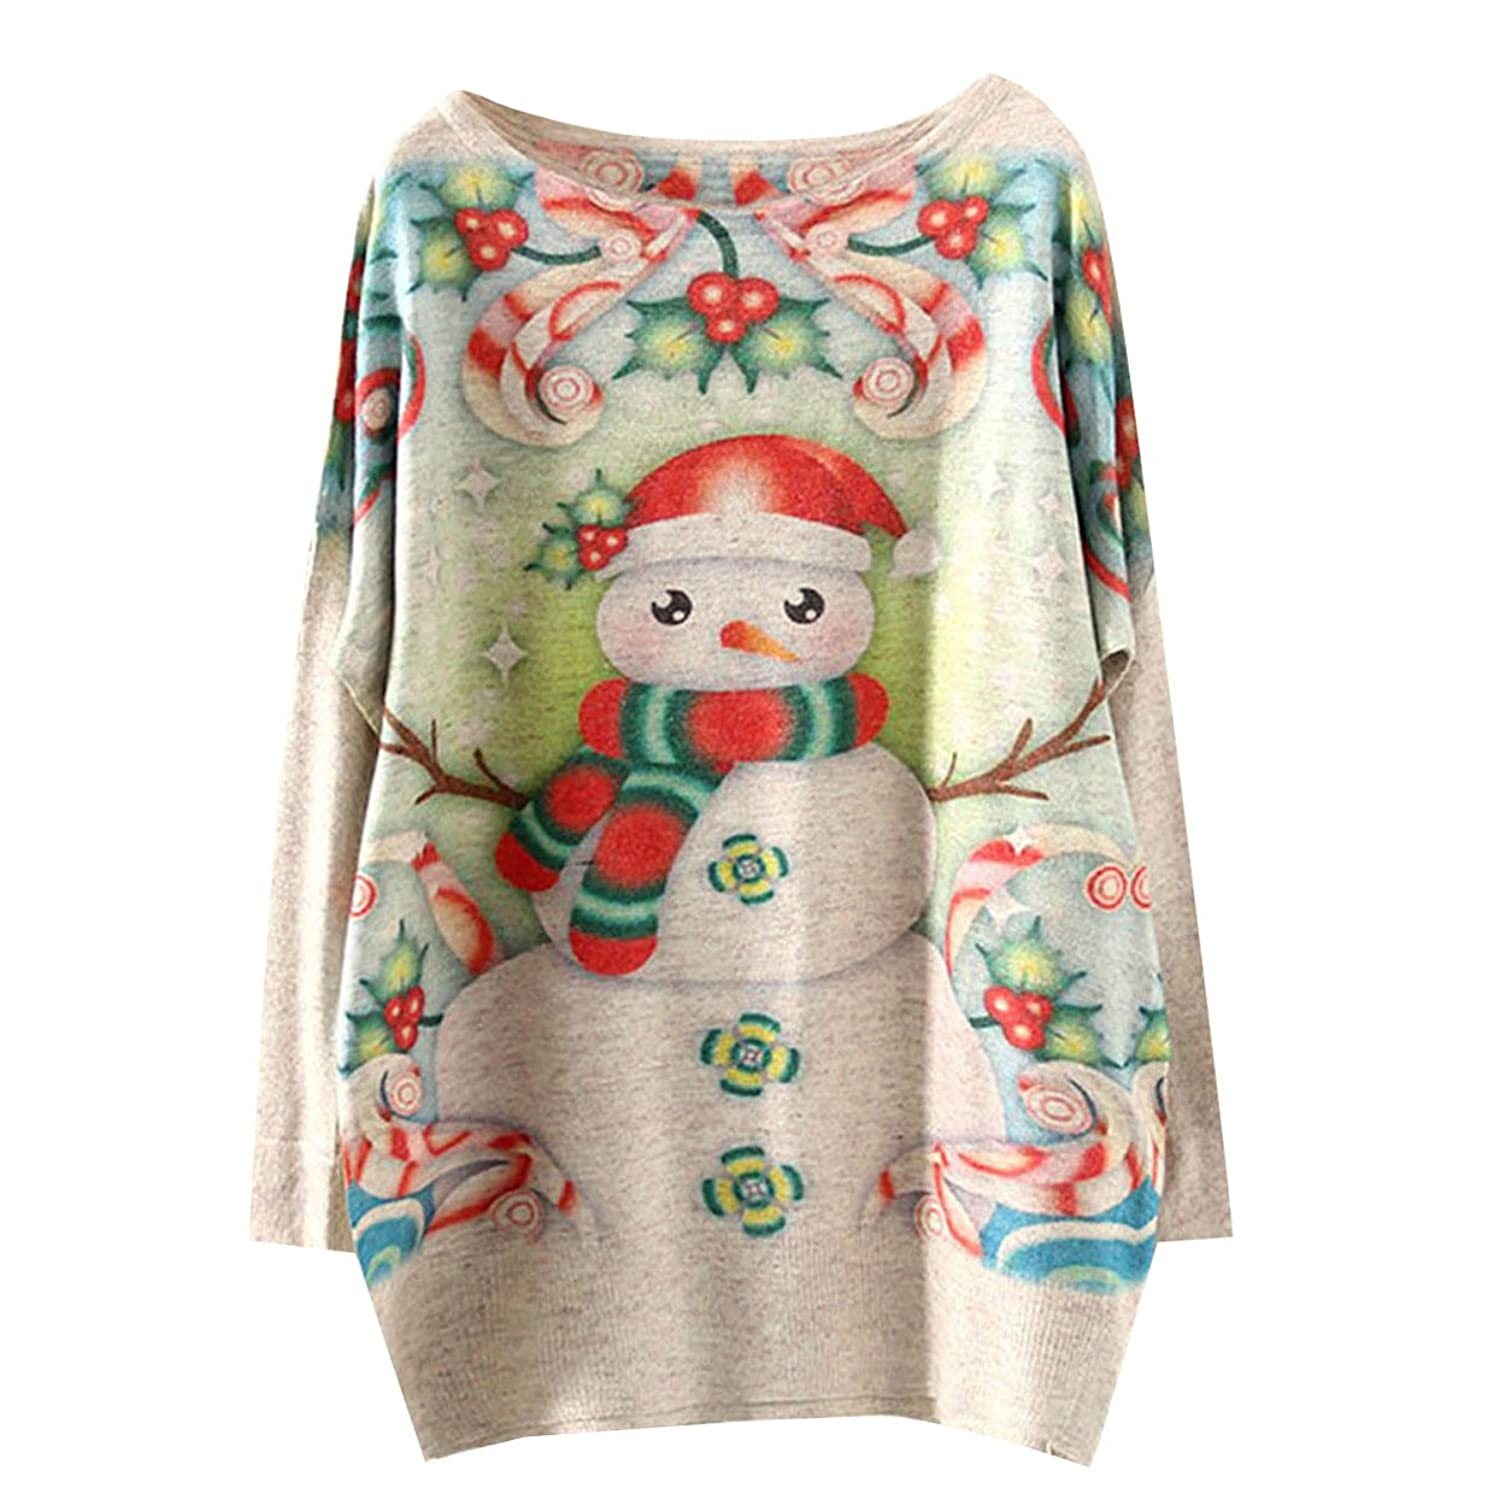 Annisking Womens Sweater Snowman Jumper Loose Pullover Bat Sleeve Knit